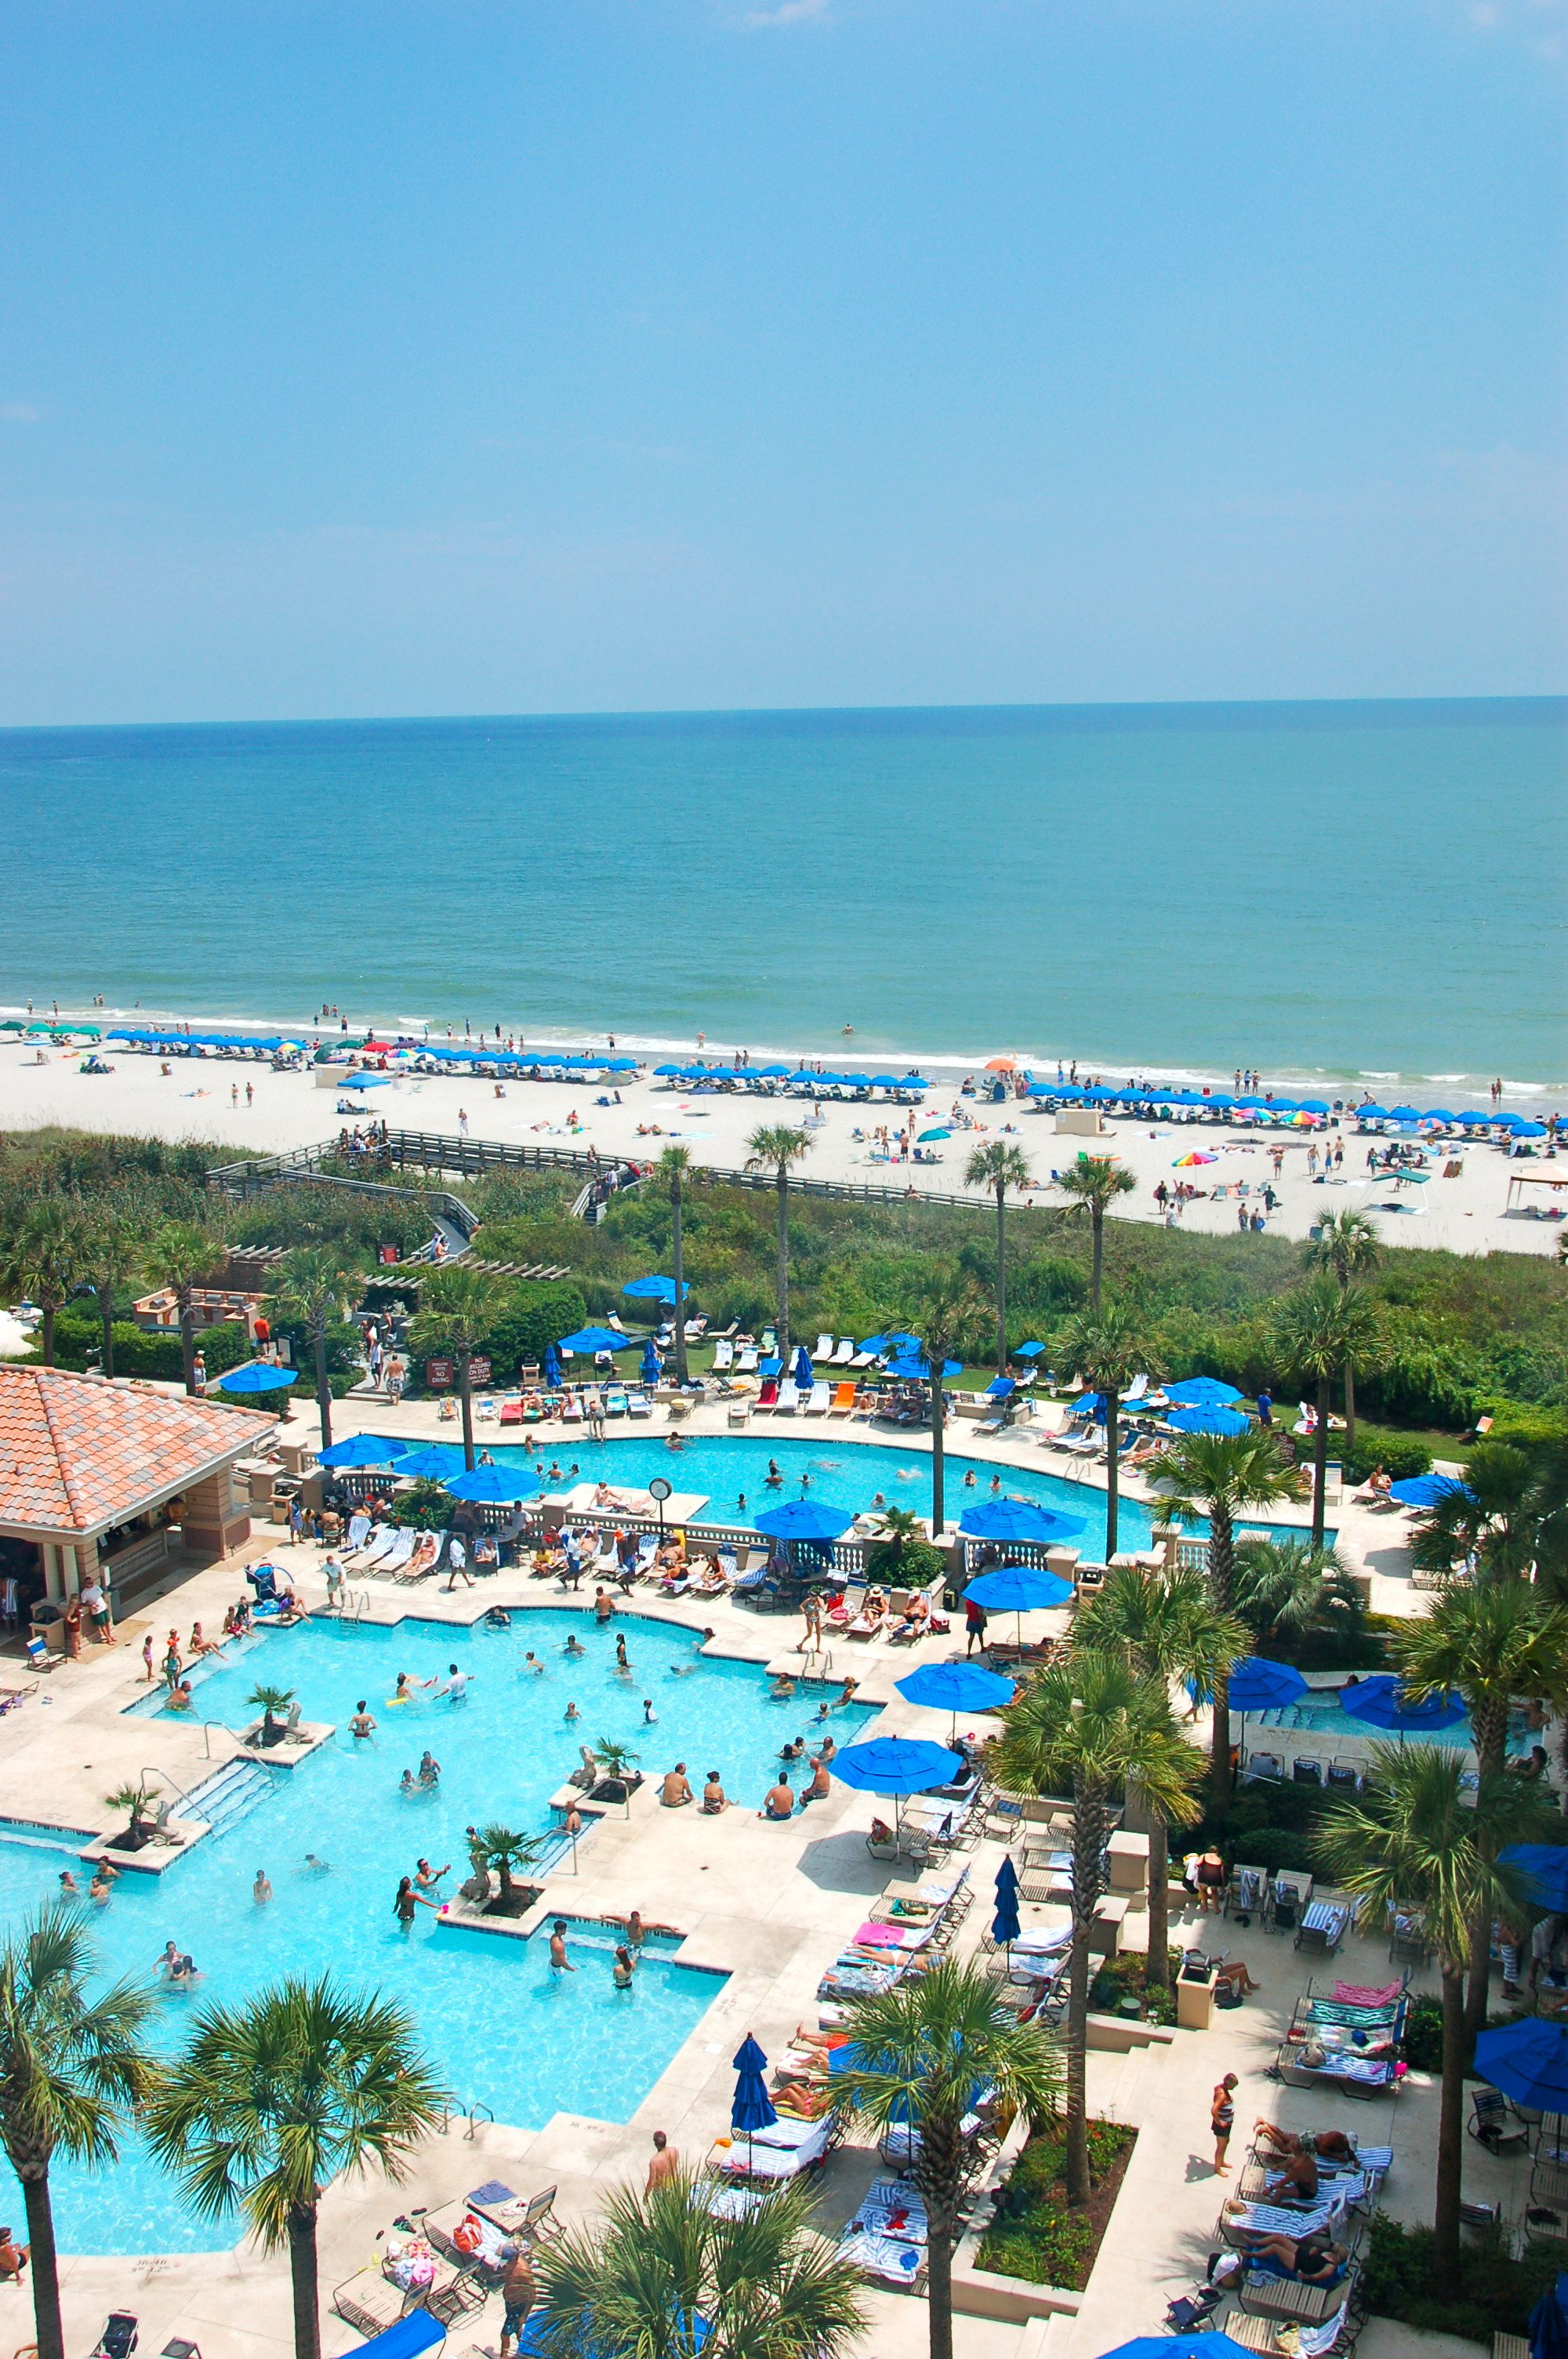 Paradise Also Known As Myrtle Beach Sc Let S Get Fresh